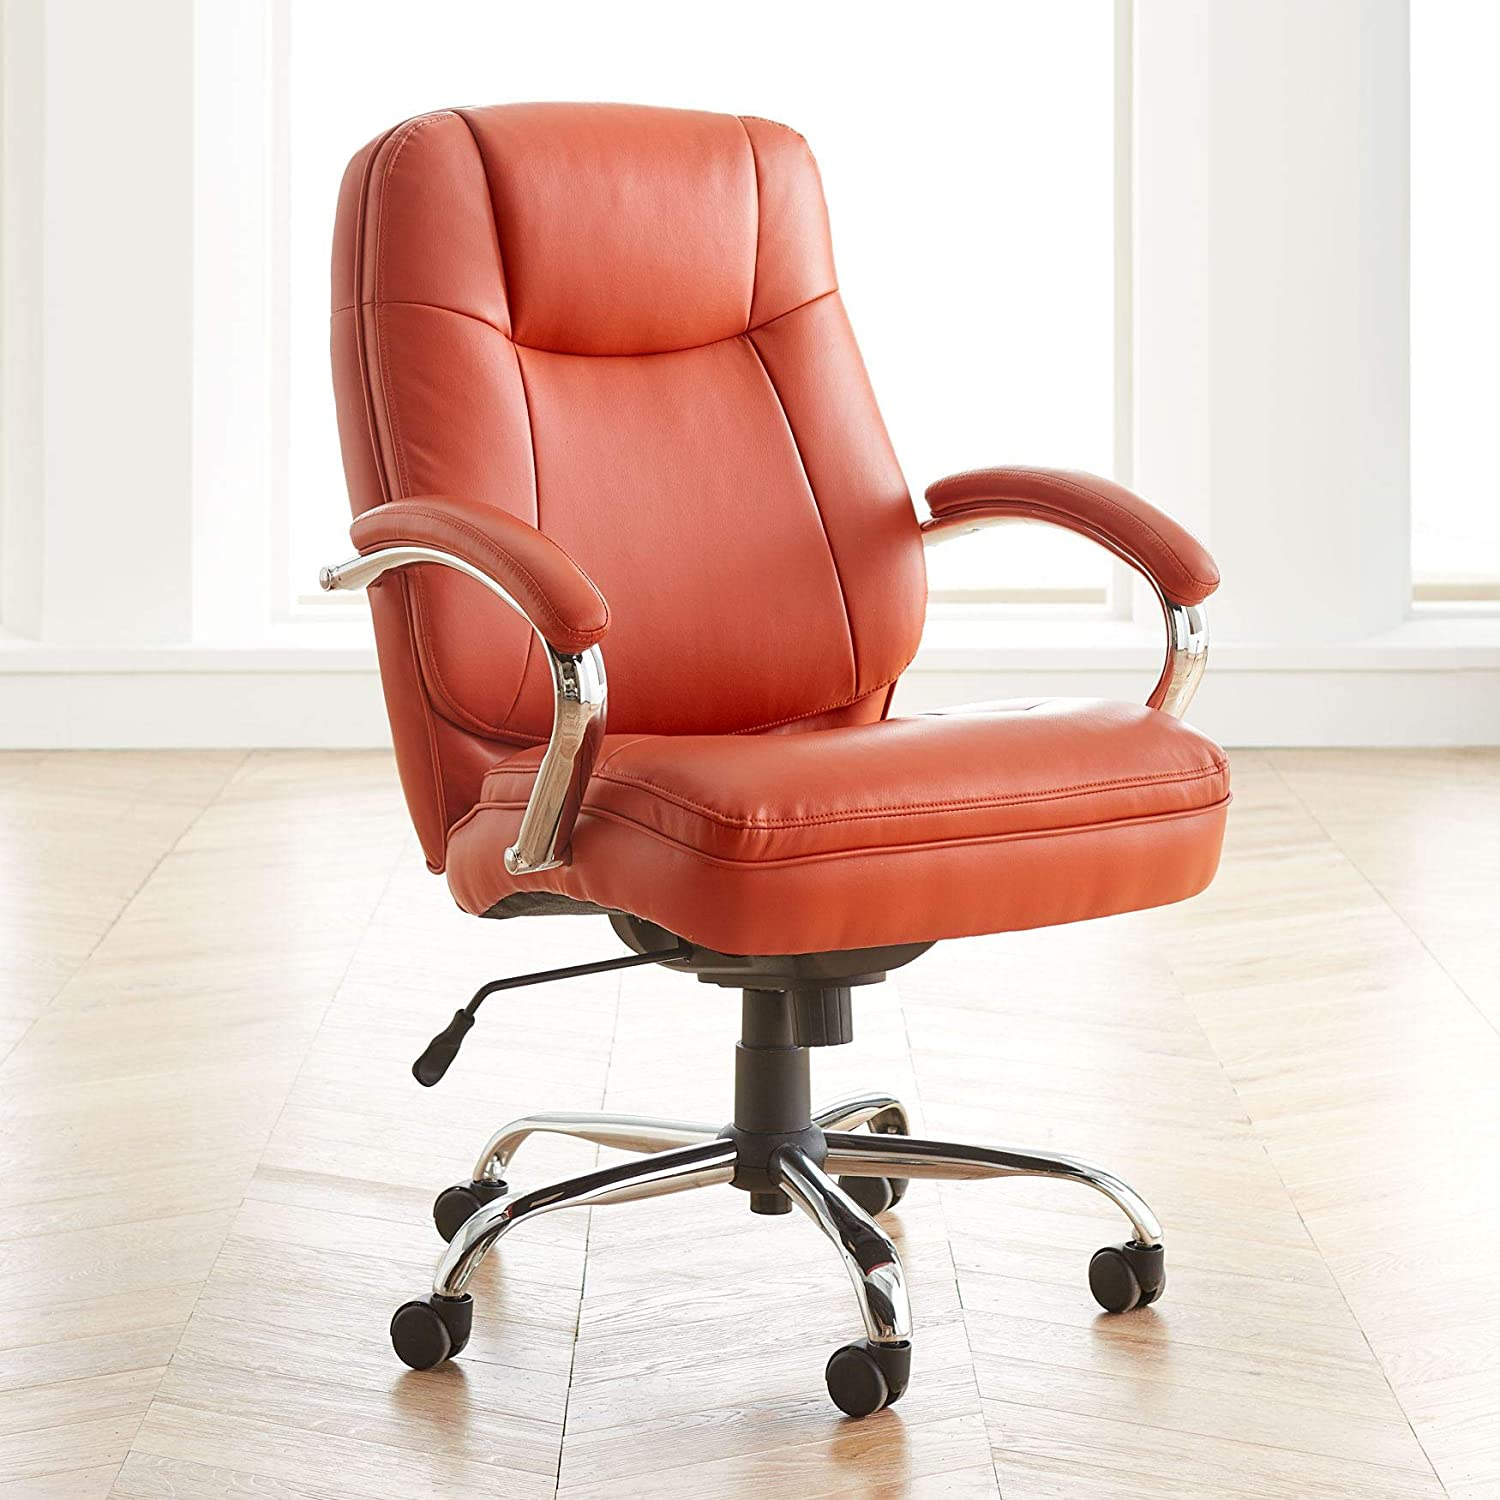 Genial Amazon.com: BrylaneHome Extra Wide Womenu0027s Office Chair   Orange: Kitchen U0026  Dining